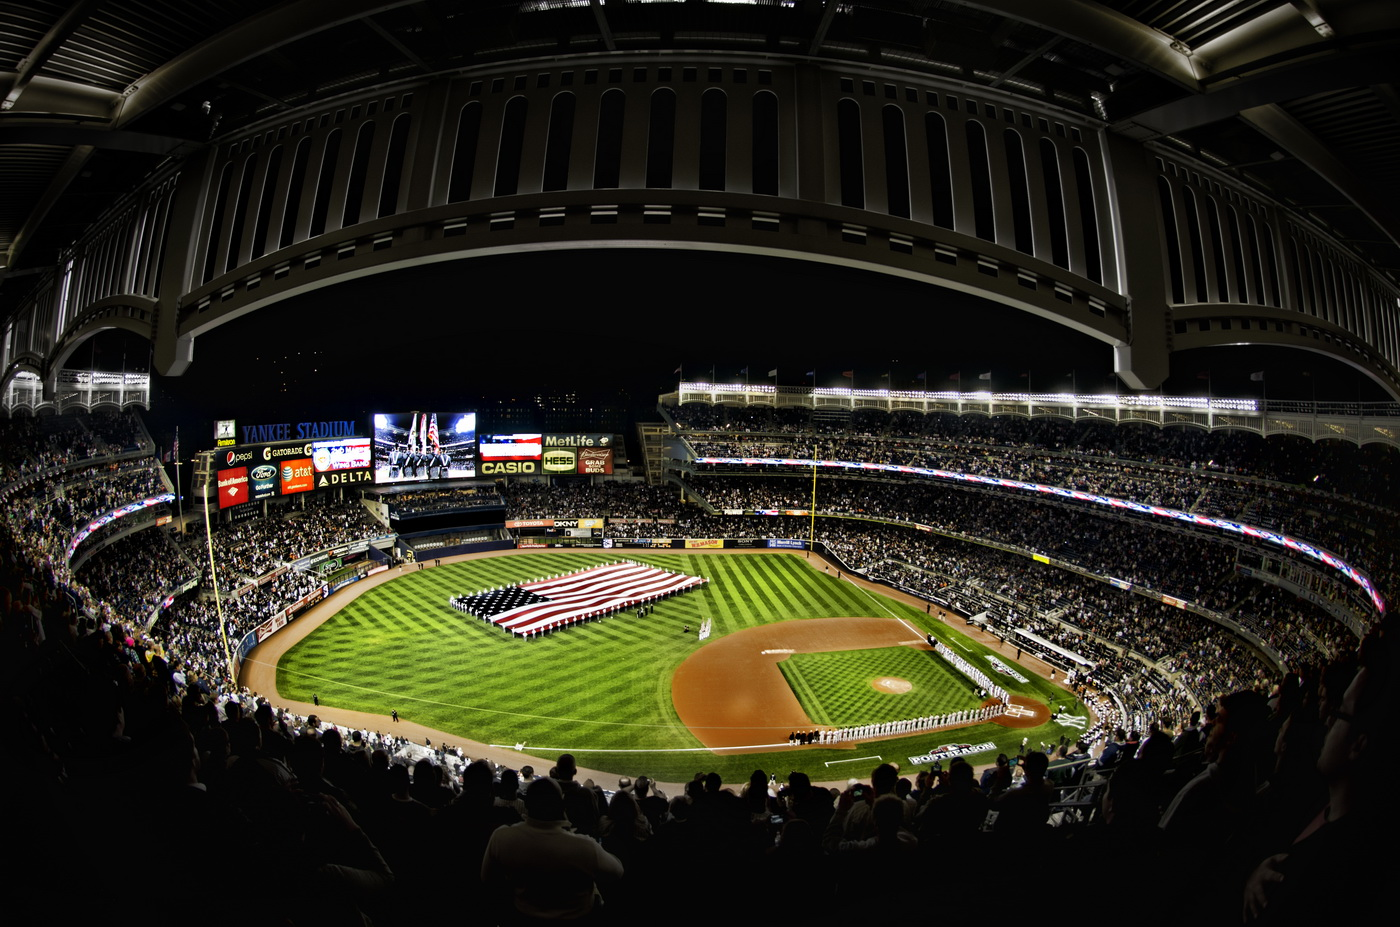 New yankee stadium wallpaper wallpapersafari for Baseball stadium mural wallpaper